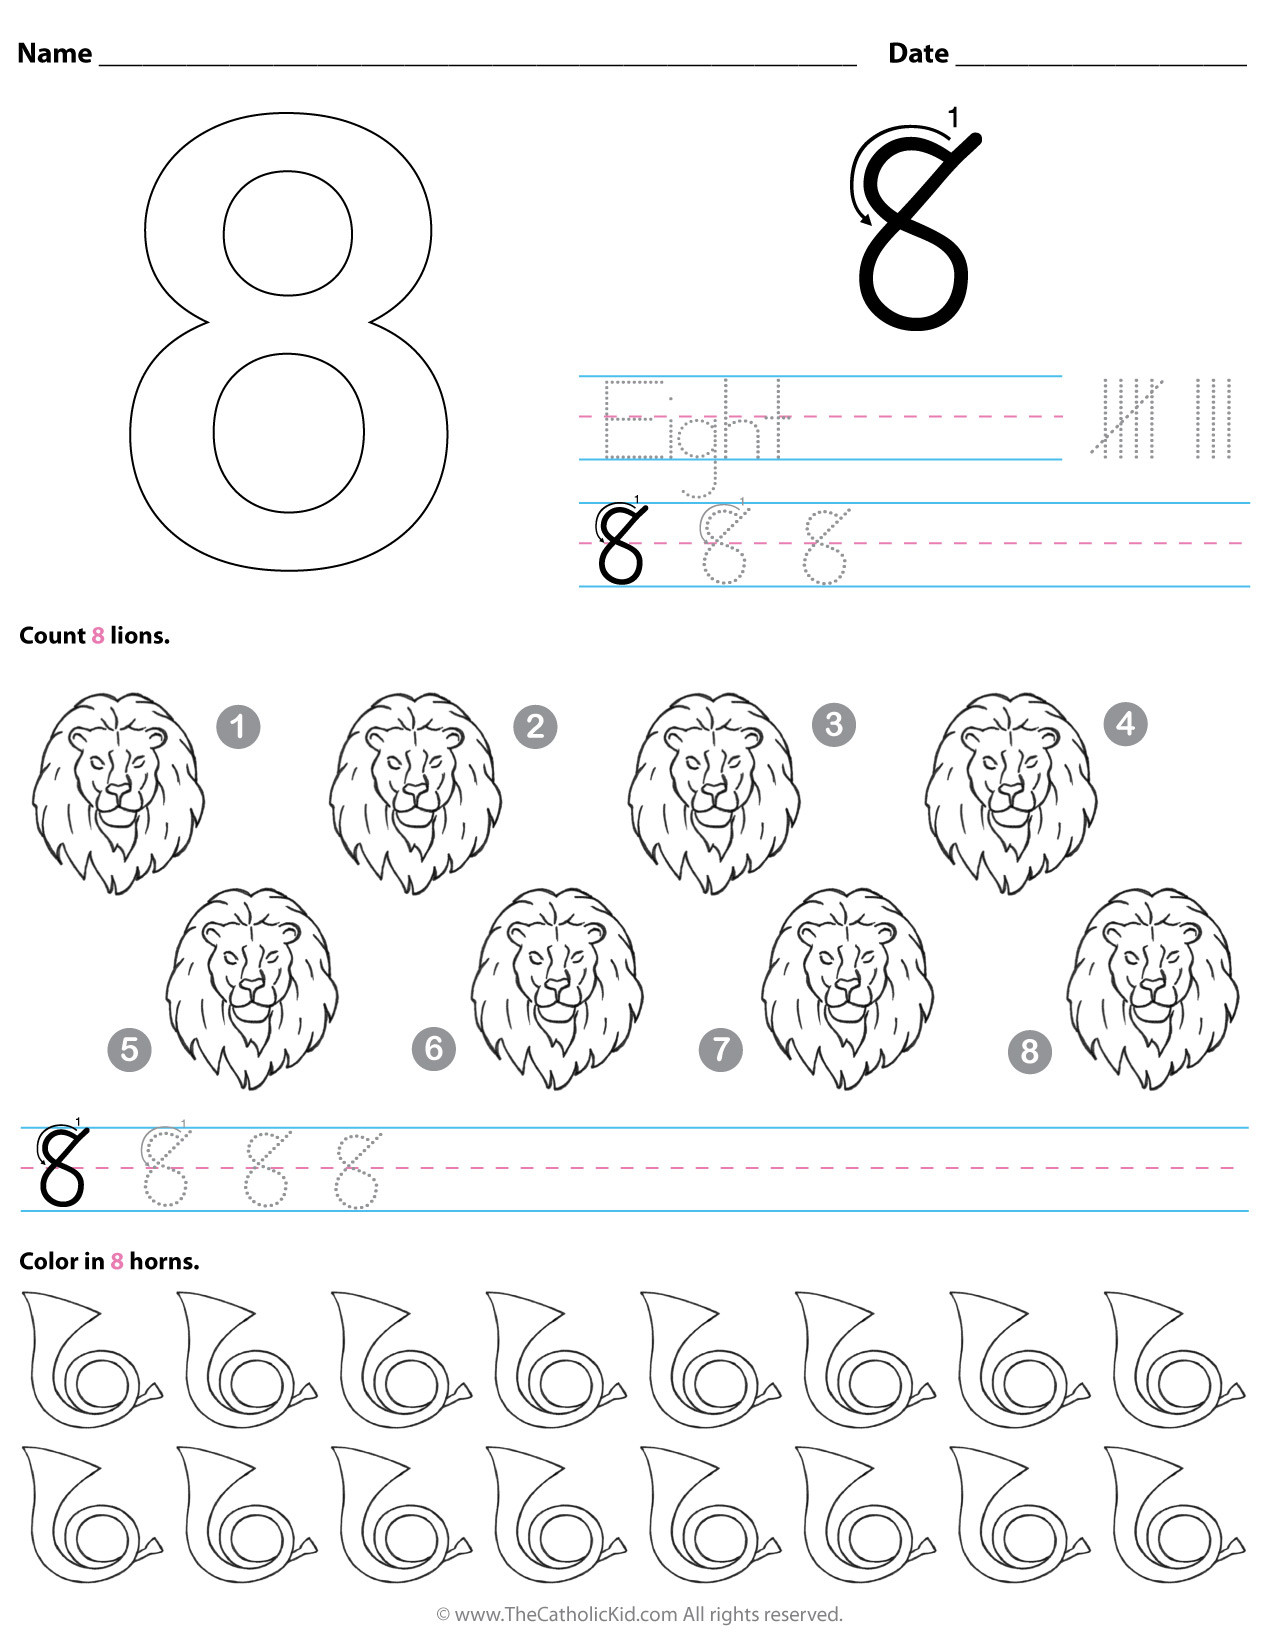 Counting Worksheets Preschool Catholic Number 8 Worksheet Preschool Kindergarten Coloring